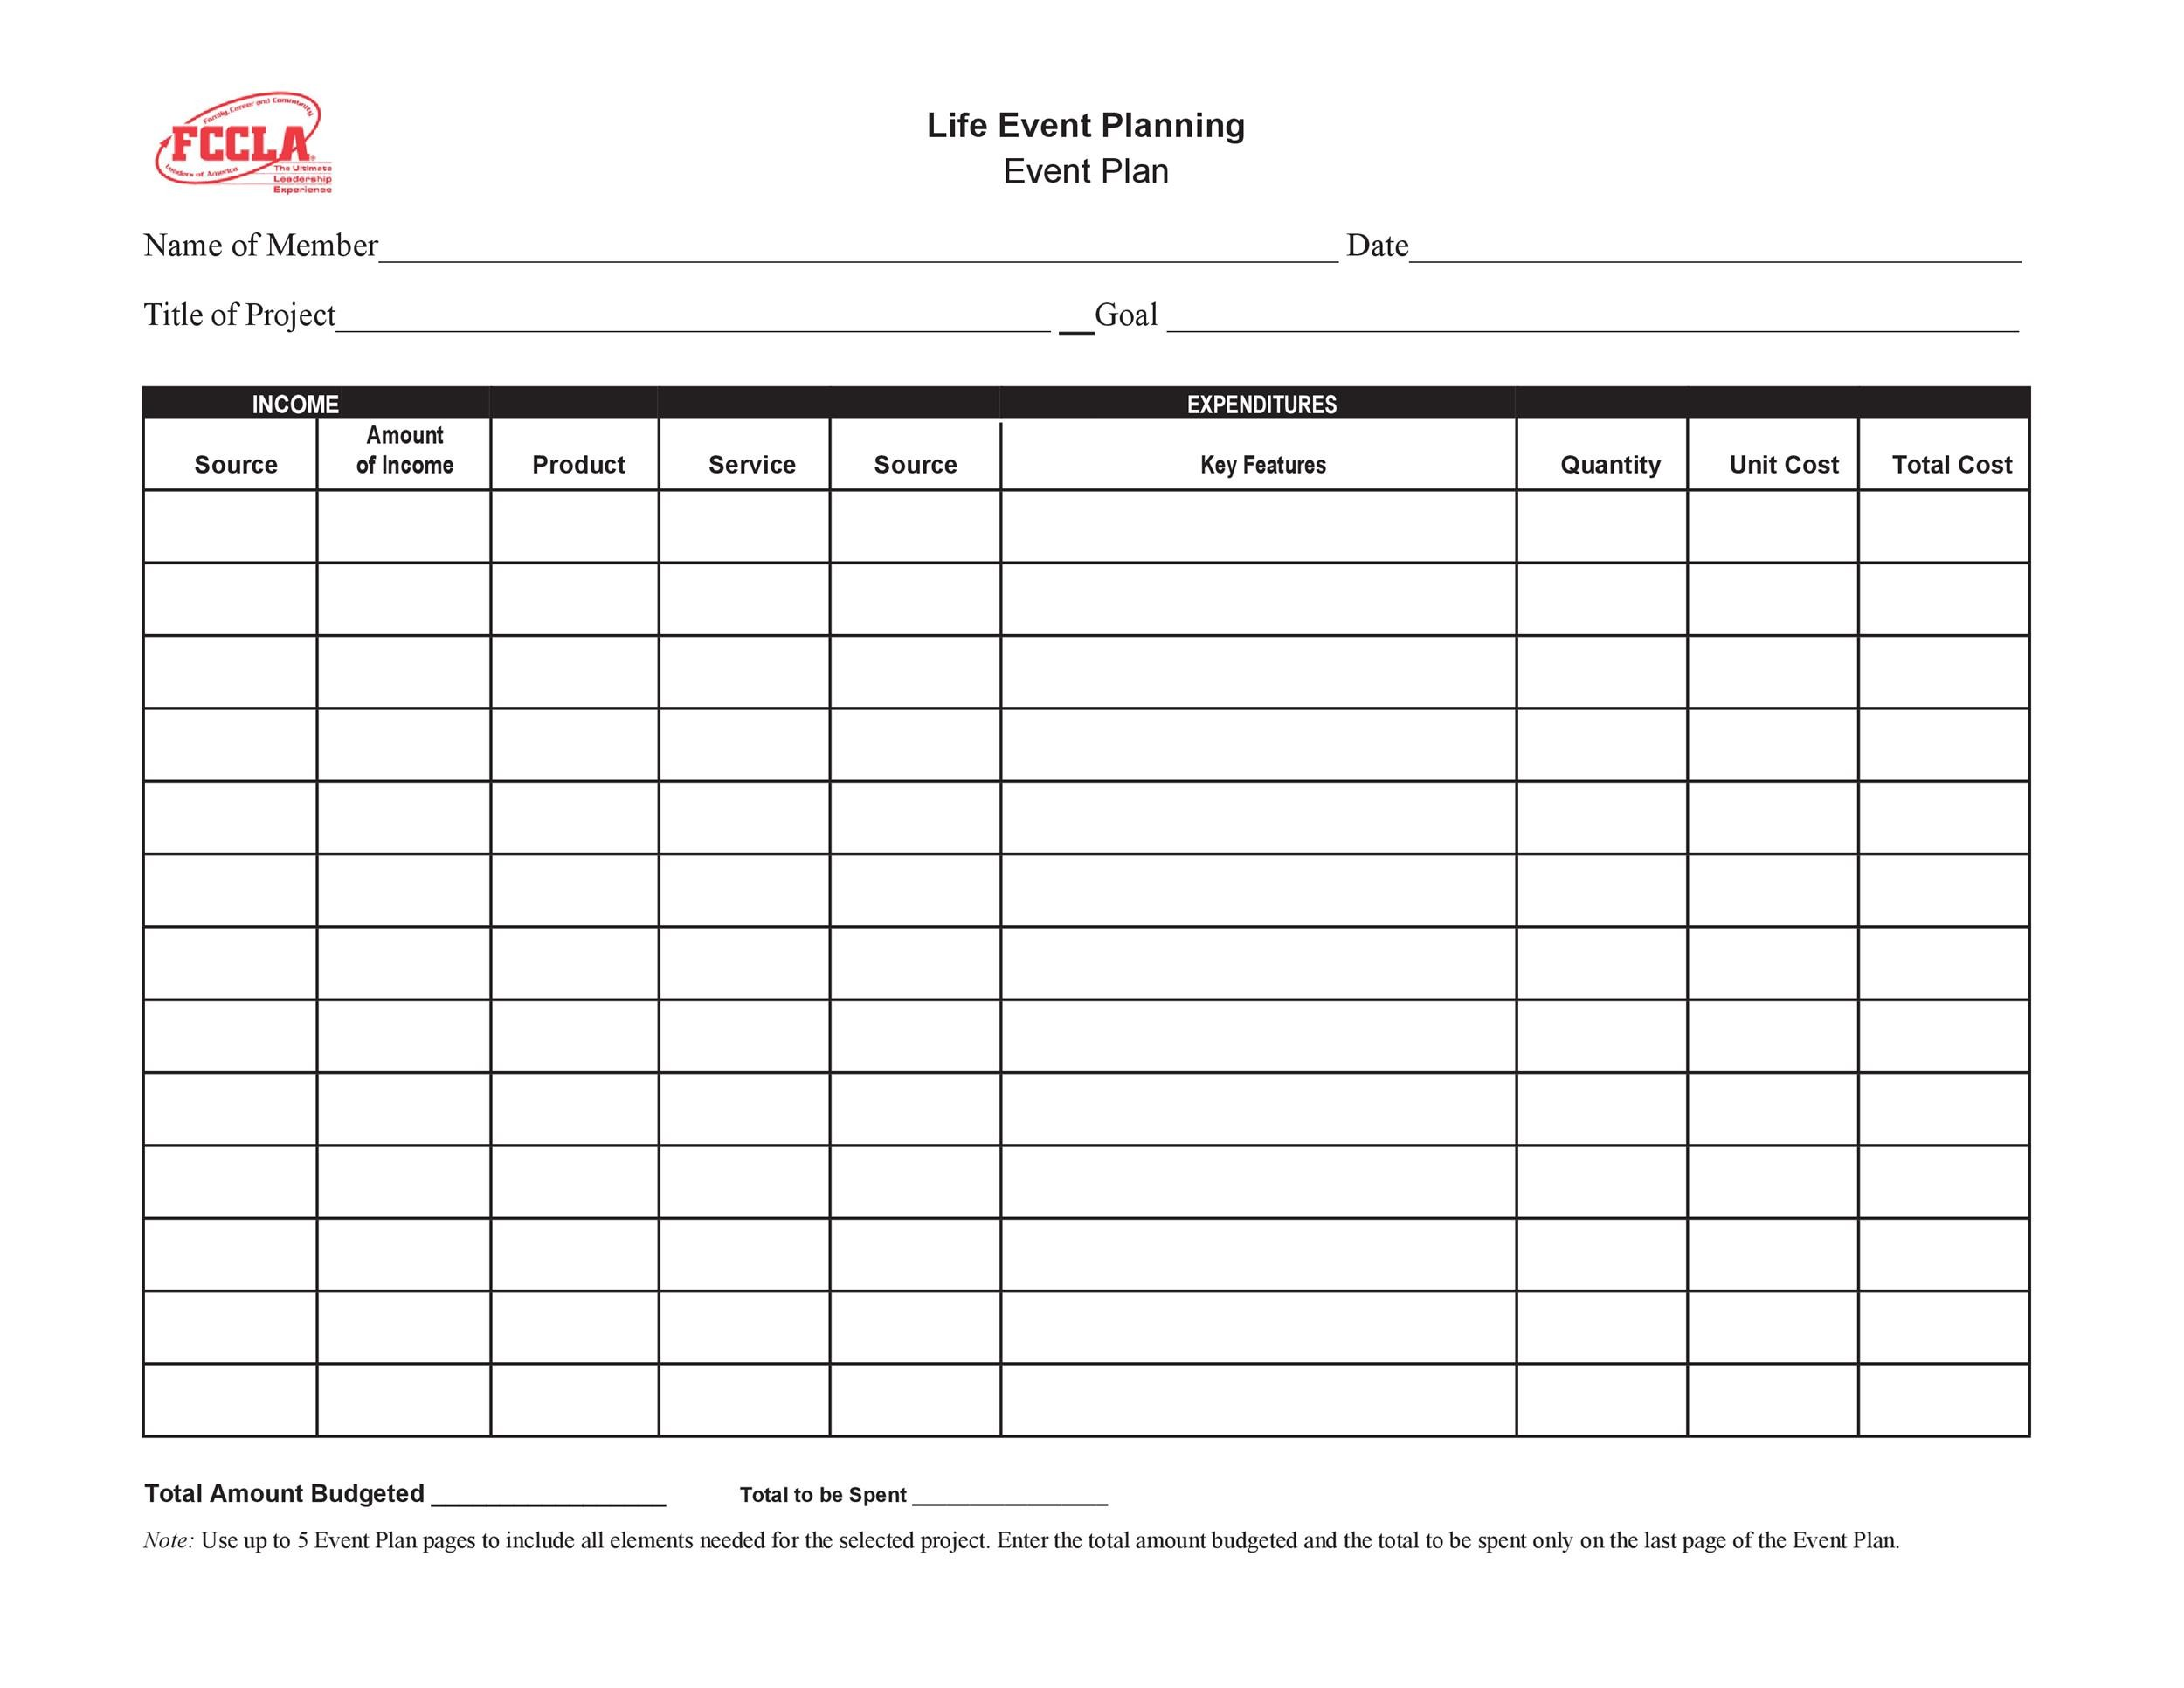 50 Professional Event Planning Checklist Templates